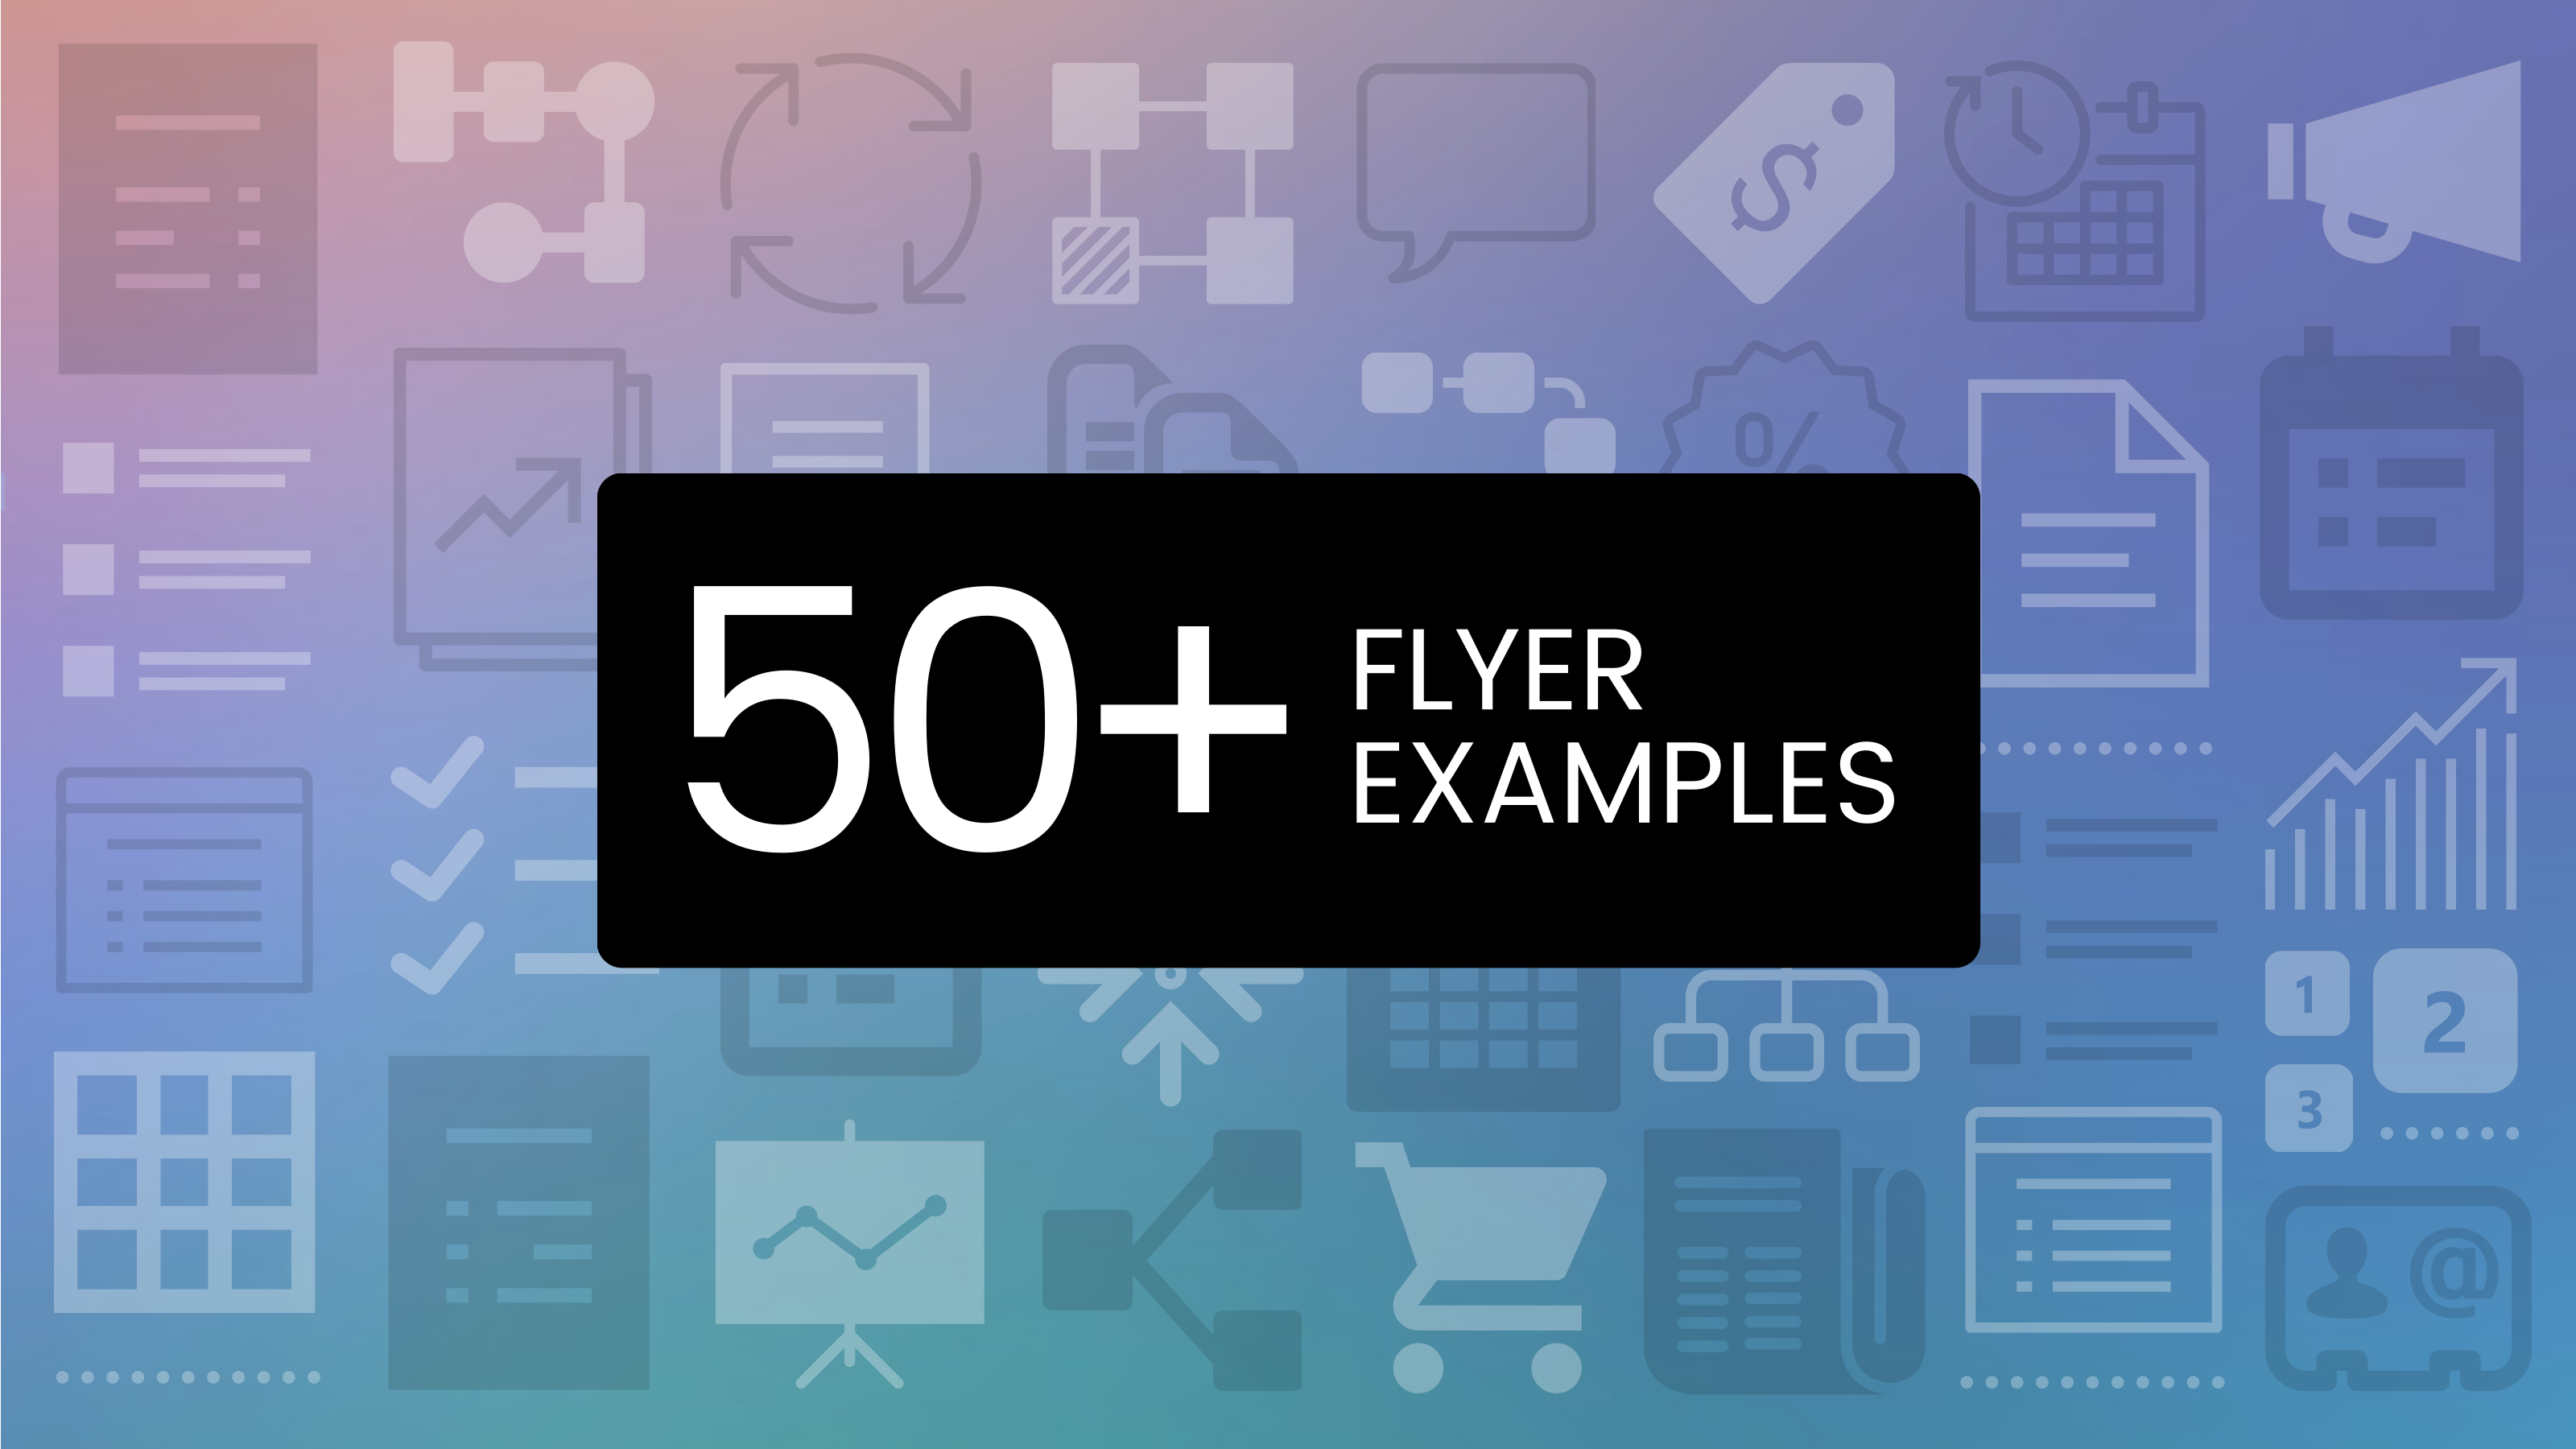 50+ Amazing Flyer Examples, Templates and Design Tips - Venngage